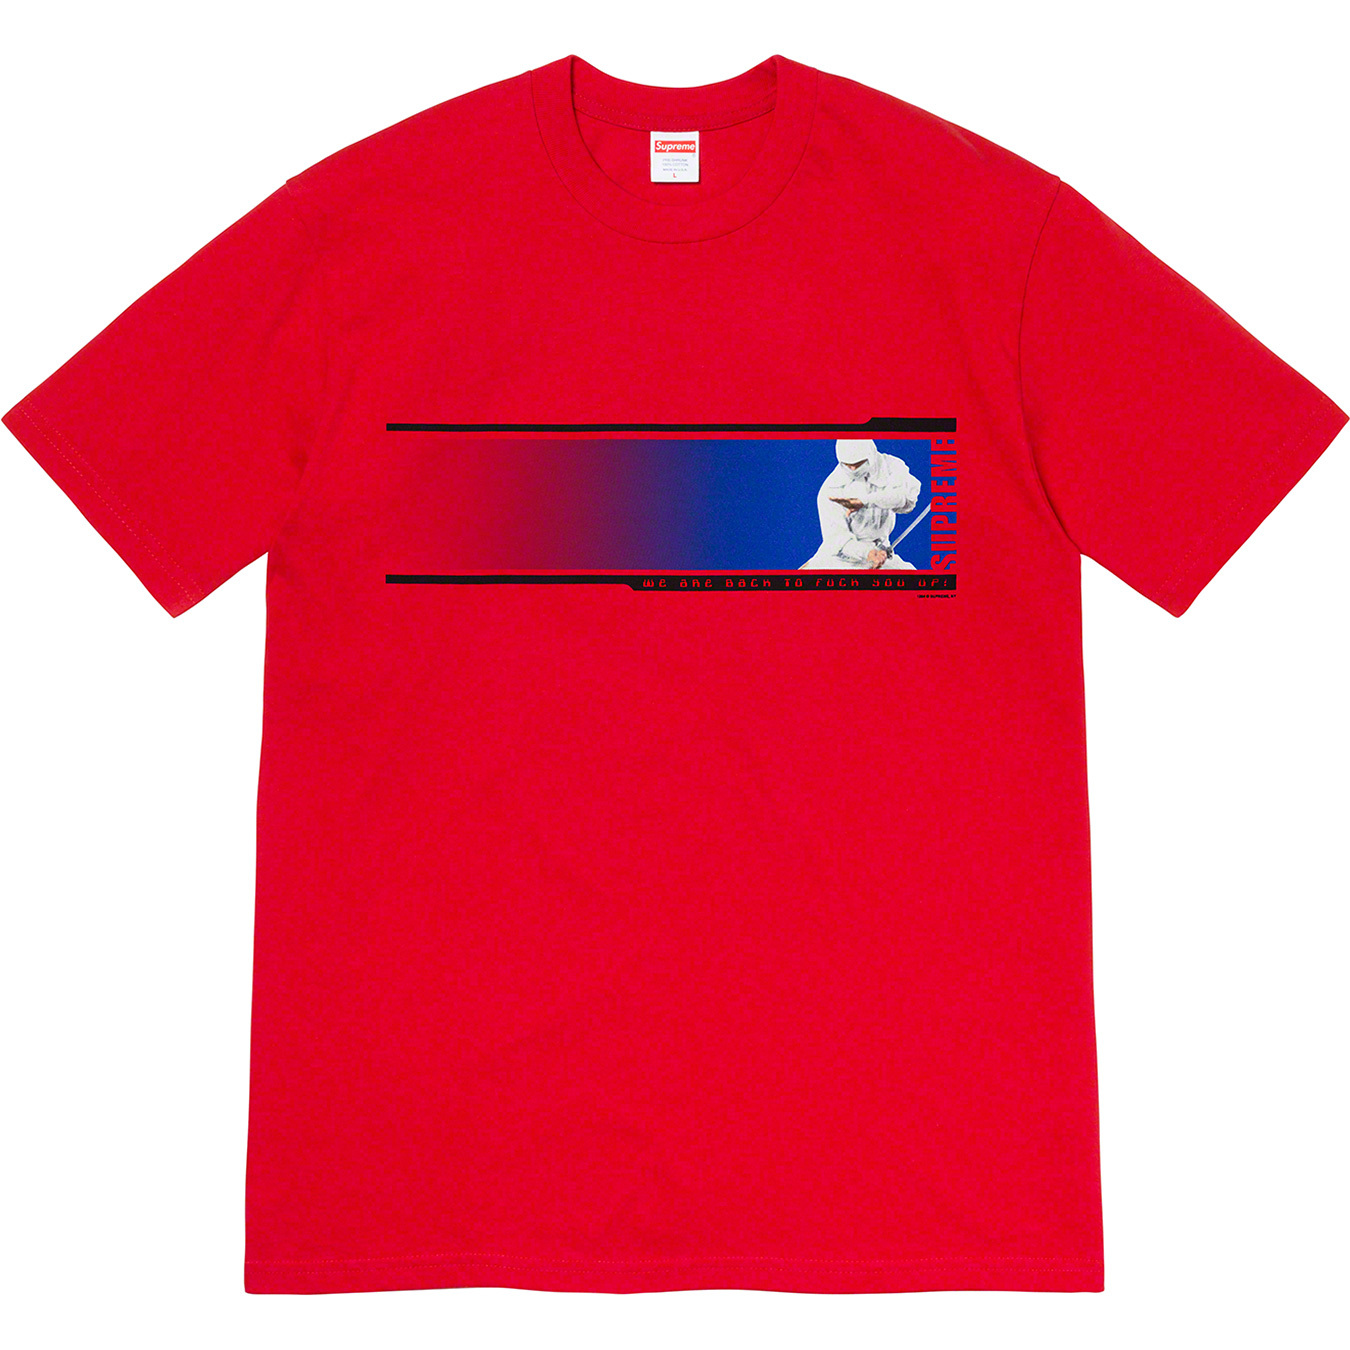 supreme-online-store-19aw-19fw-we-are-back-tee